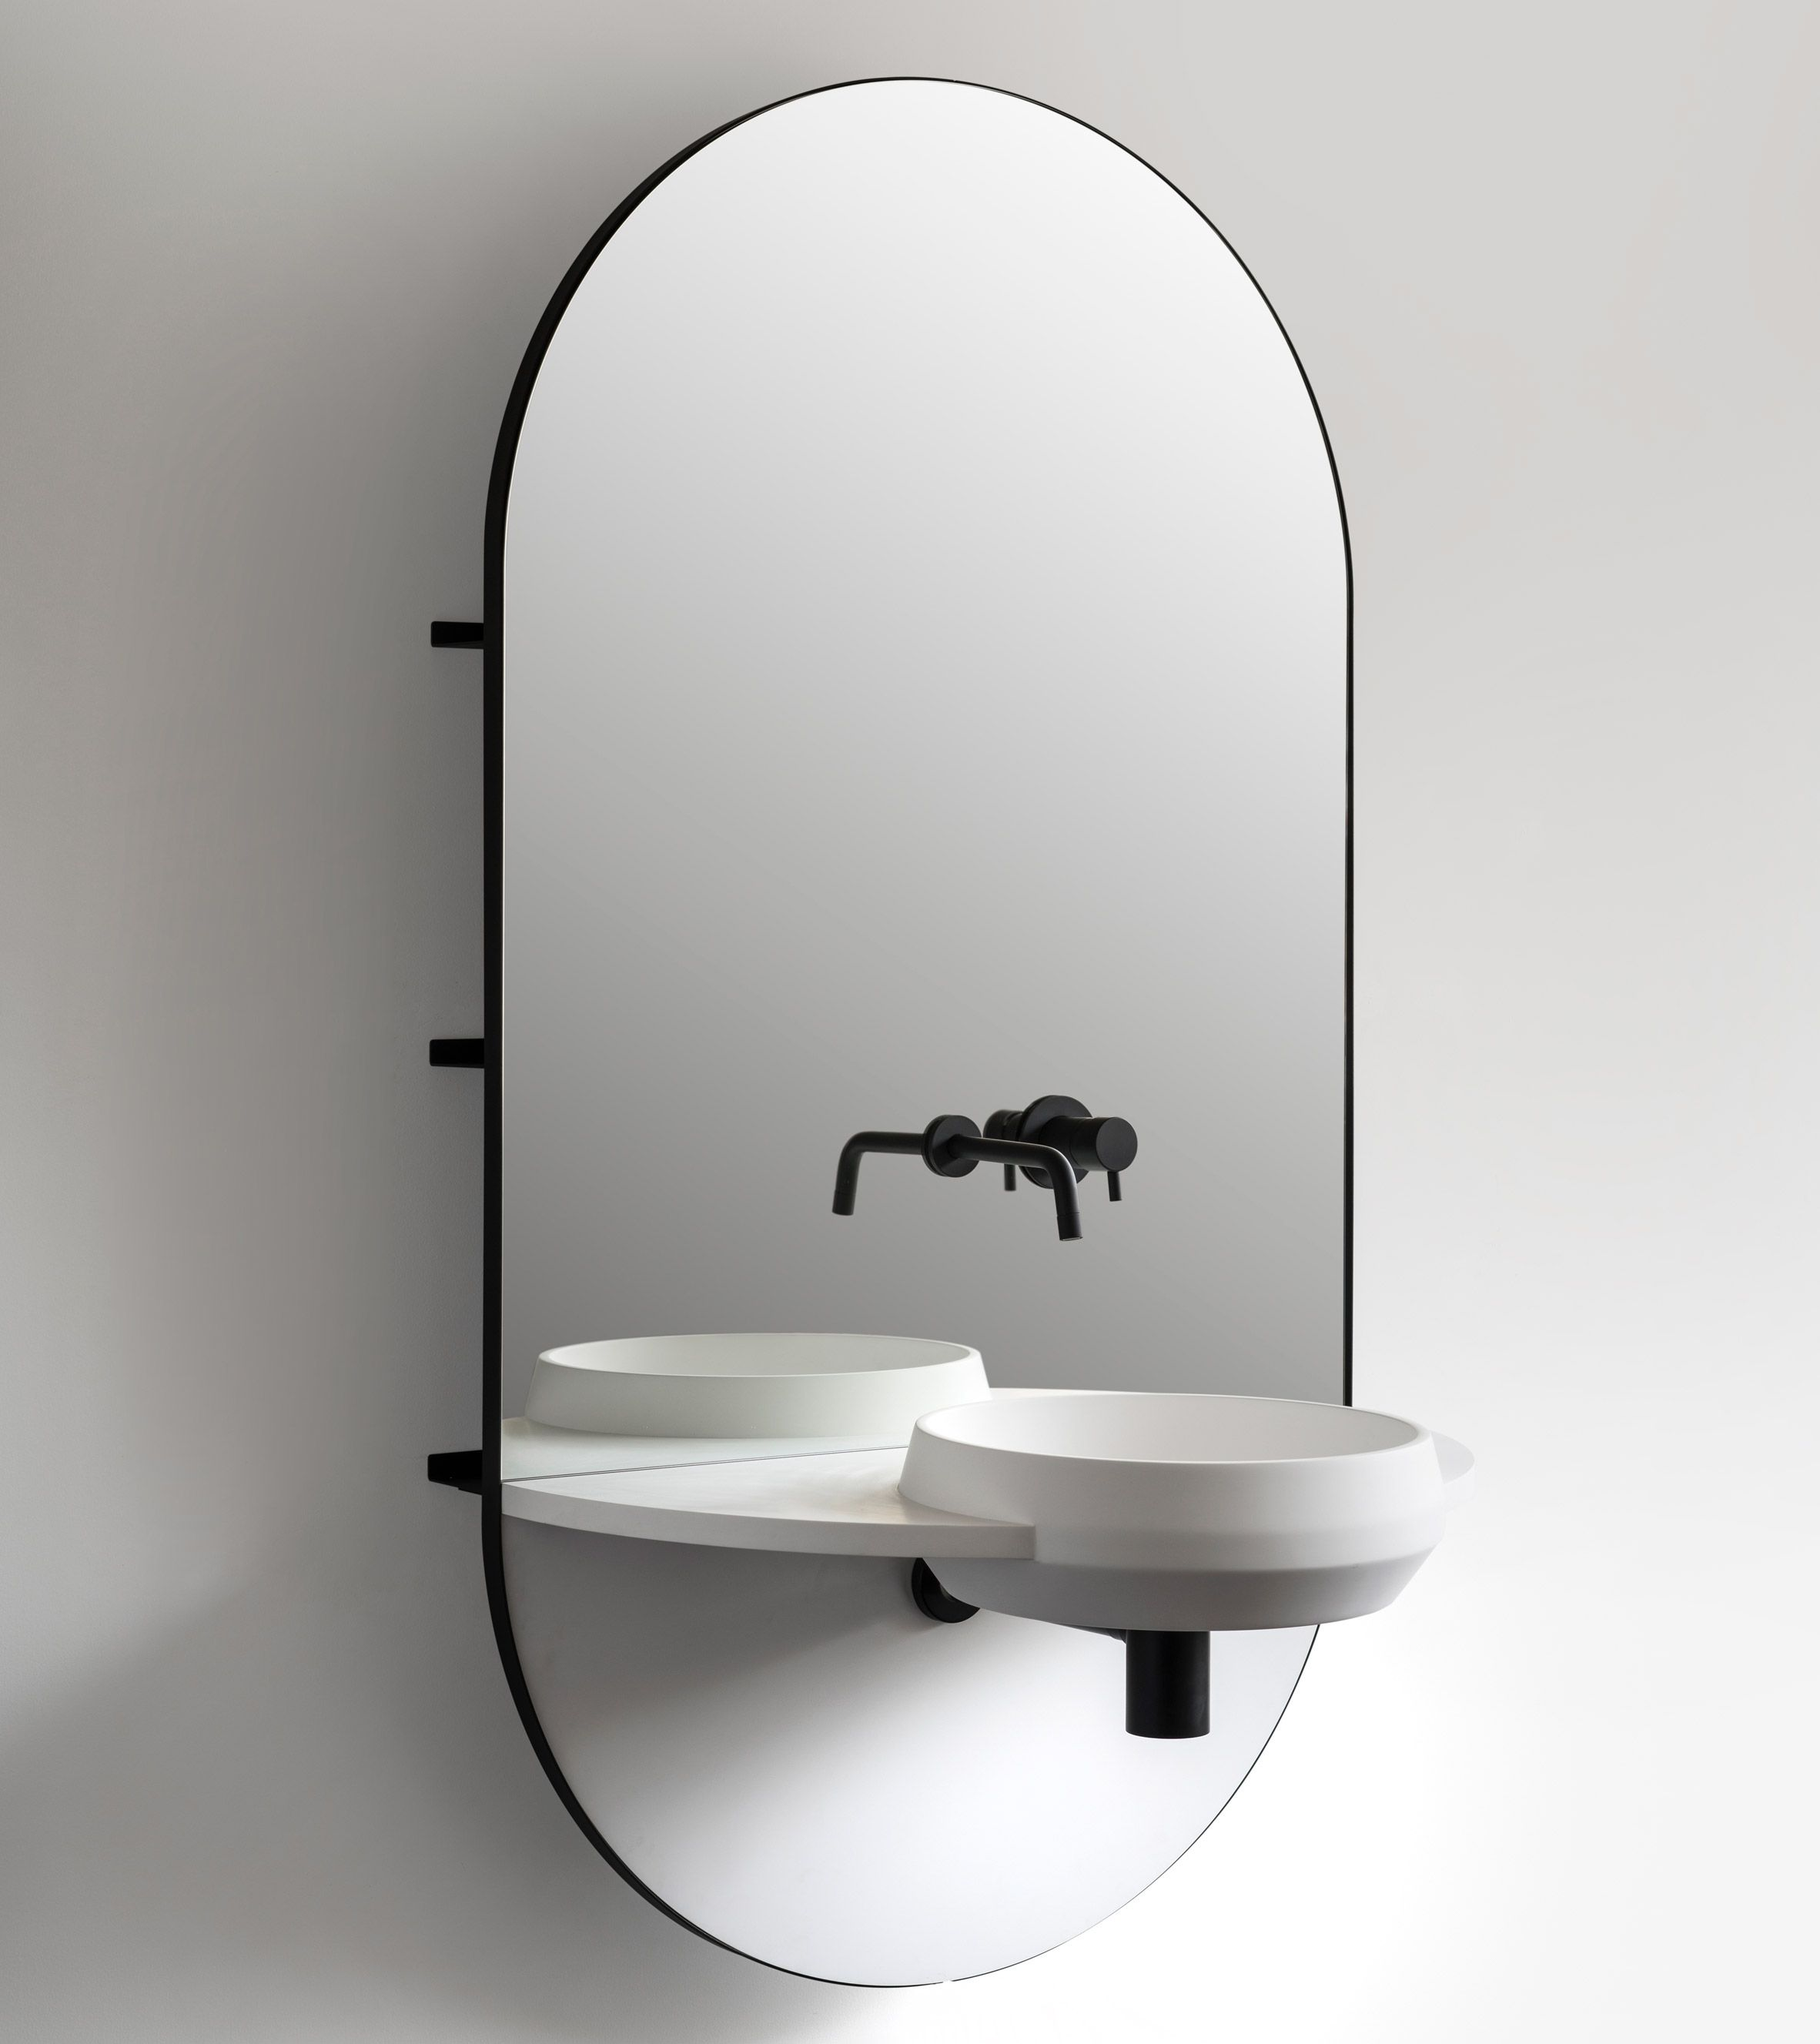 Badezimmer Minimalisti Eight Of The Best New Designs For Minimalist Bathrooms